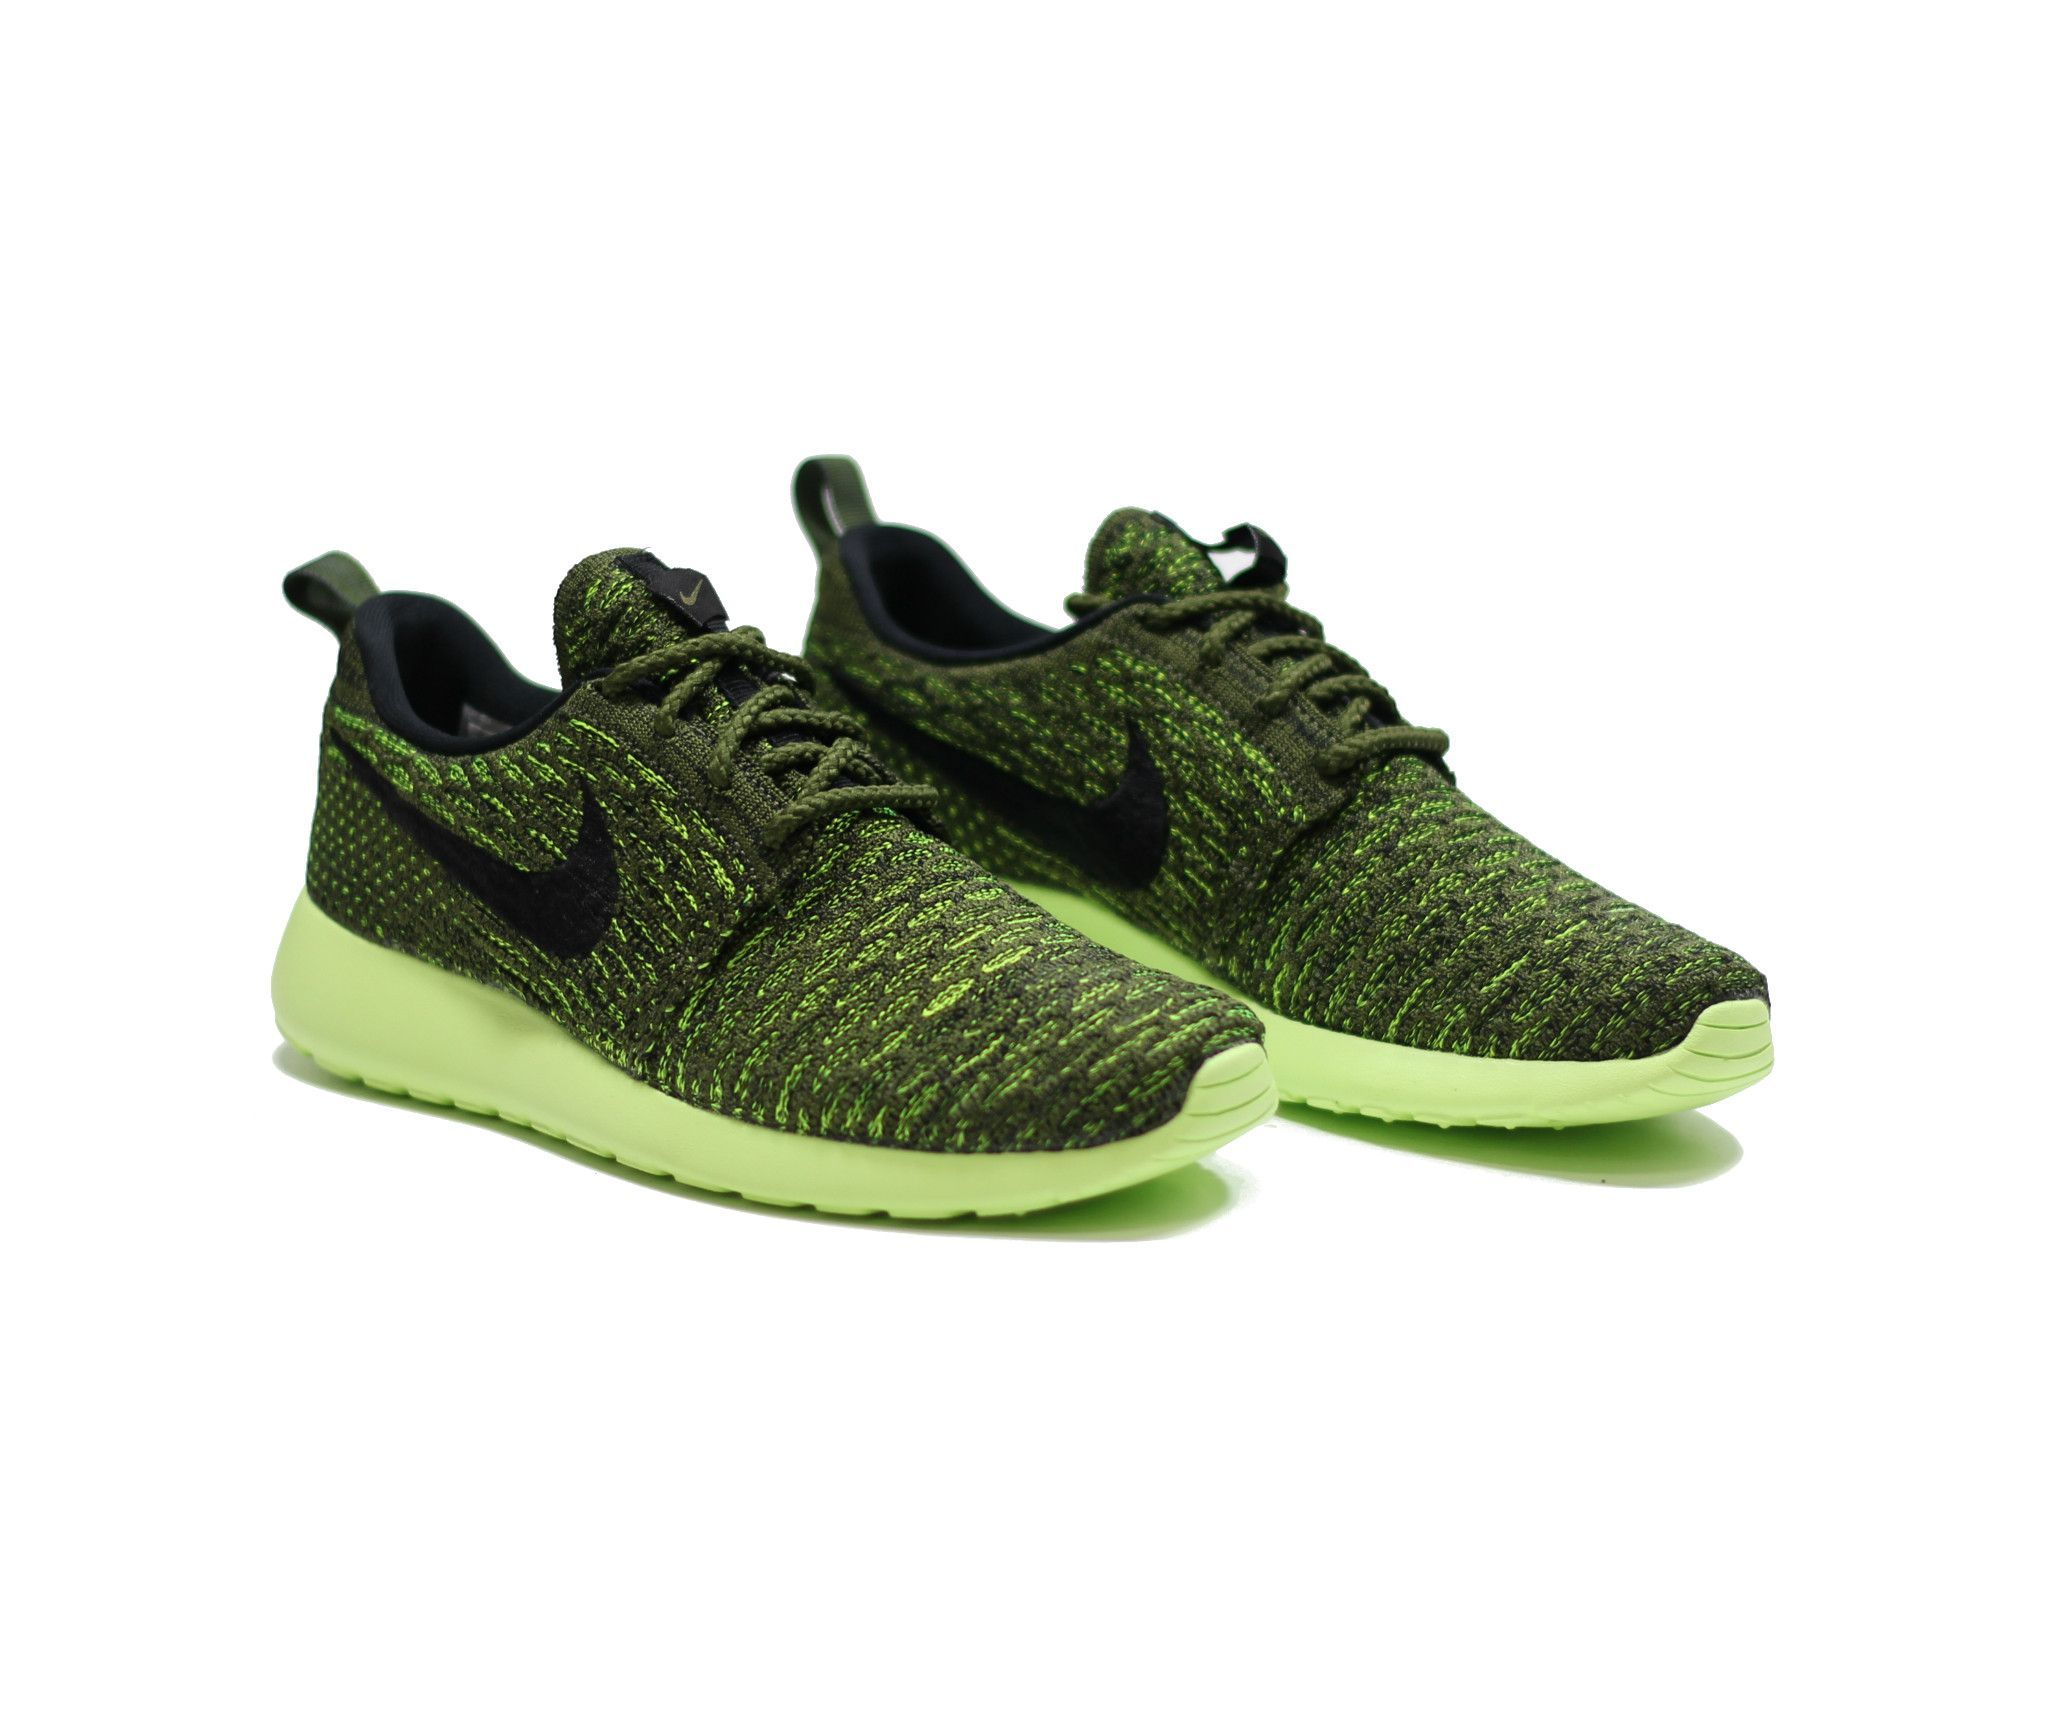 0bcf995a638d NIKE  WMNS Roshe Run Flyknit - Rough Green Blck